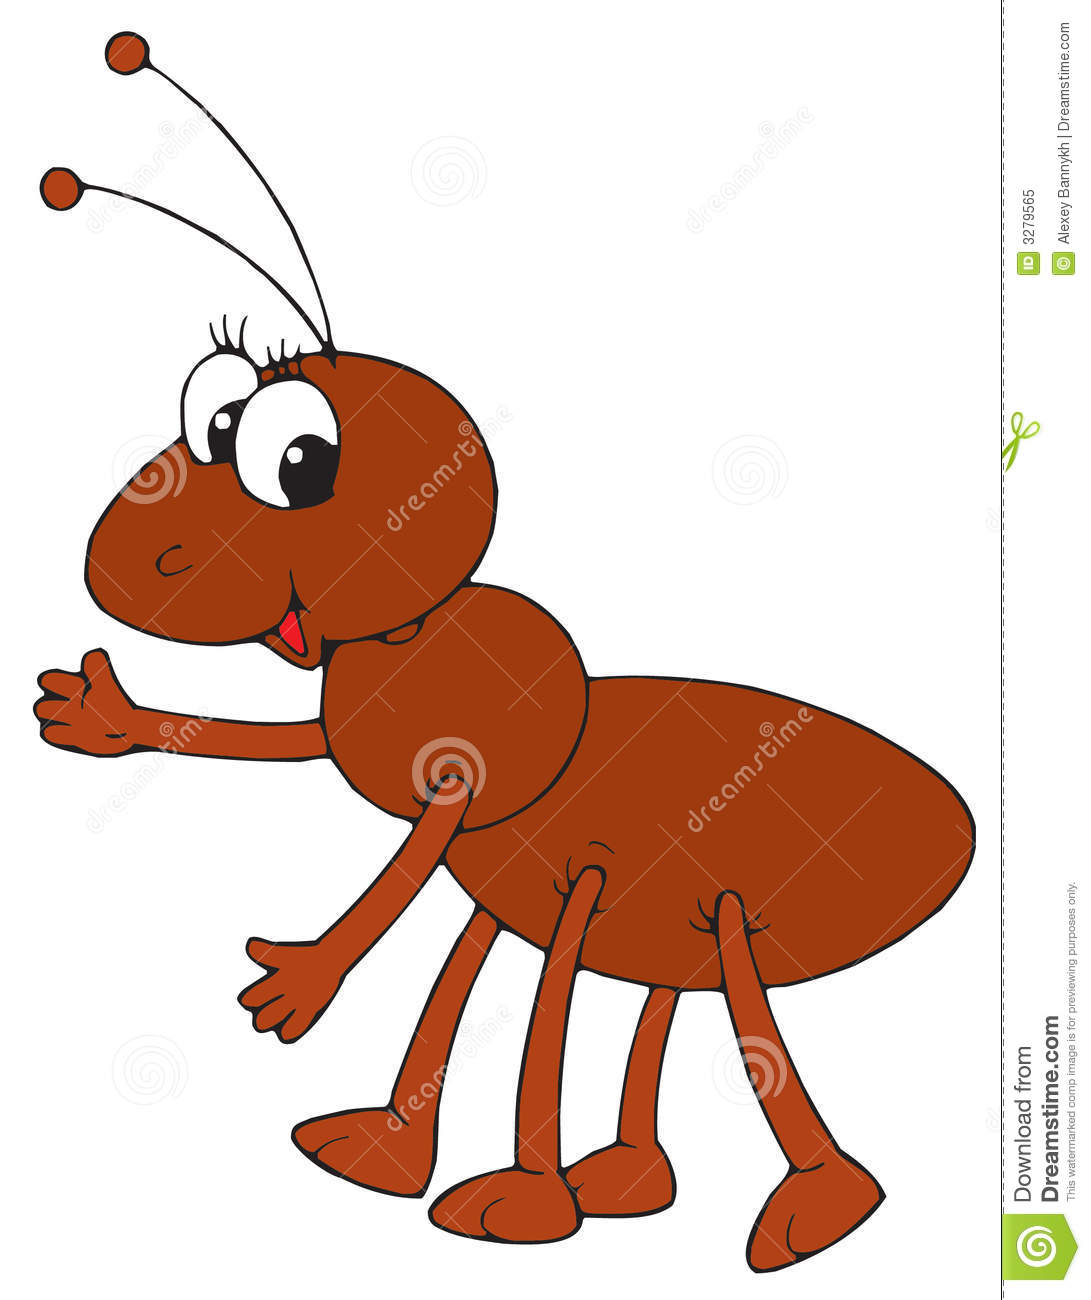 Ant clipart #10, Download drawings